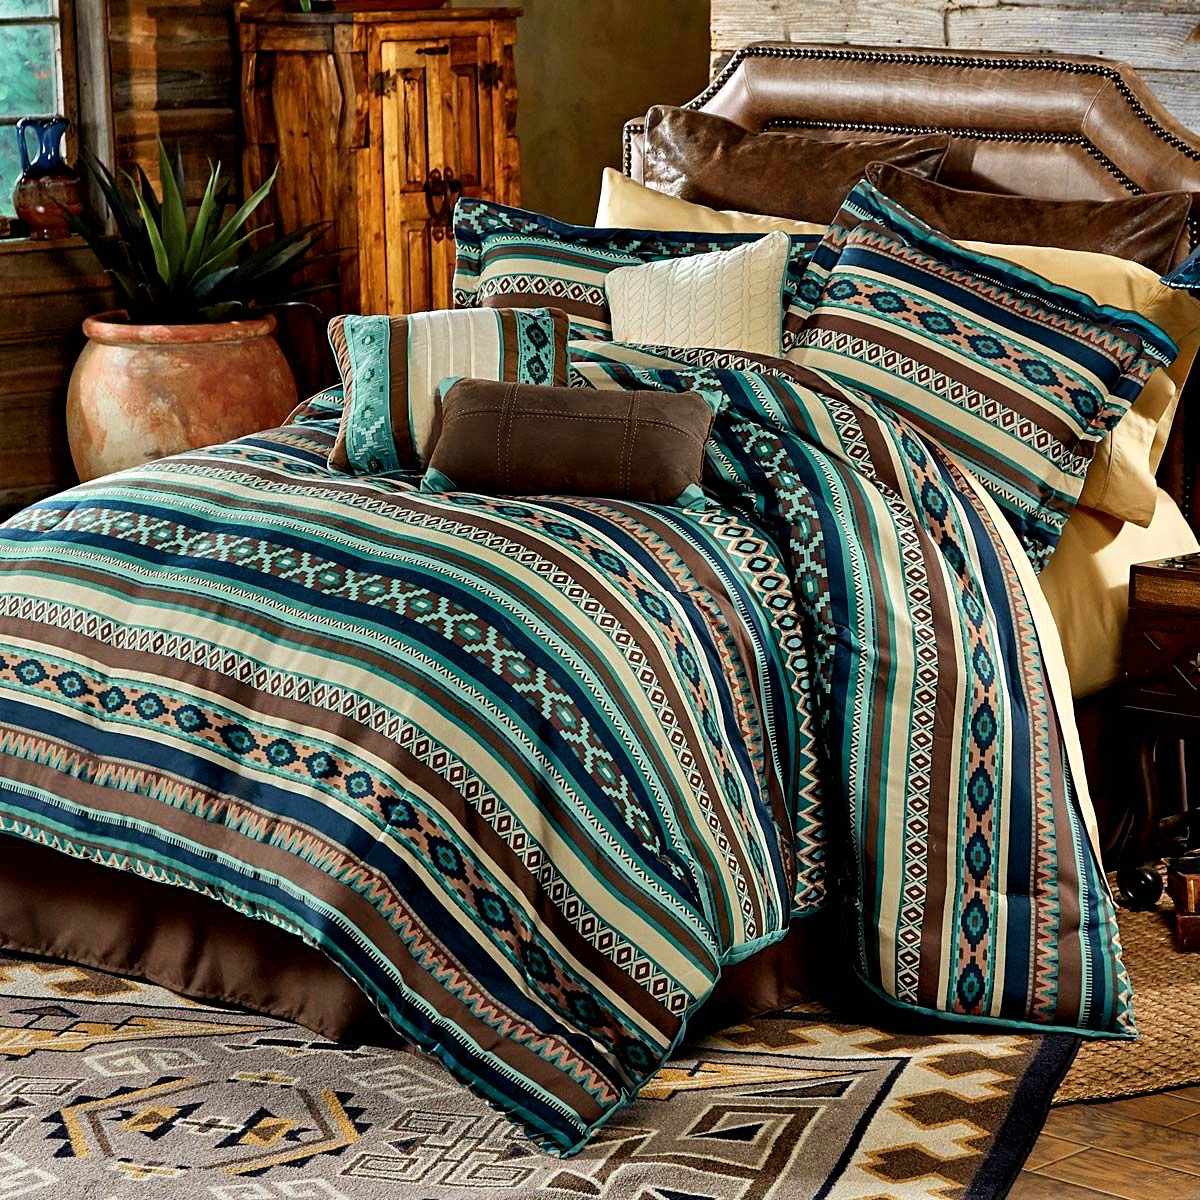 Southwest Turquoise Native American Queen Comforter, 2 Shams, 3 Decorative Pillows, 1 Bedskirt + Home Style Sleep Mask Southwestern Lodge Cabin